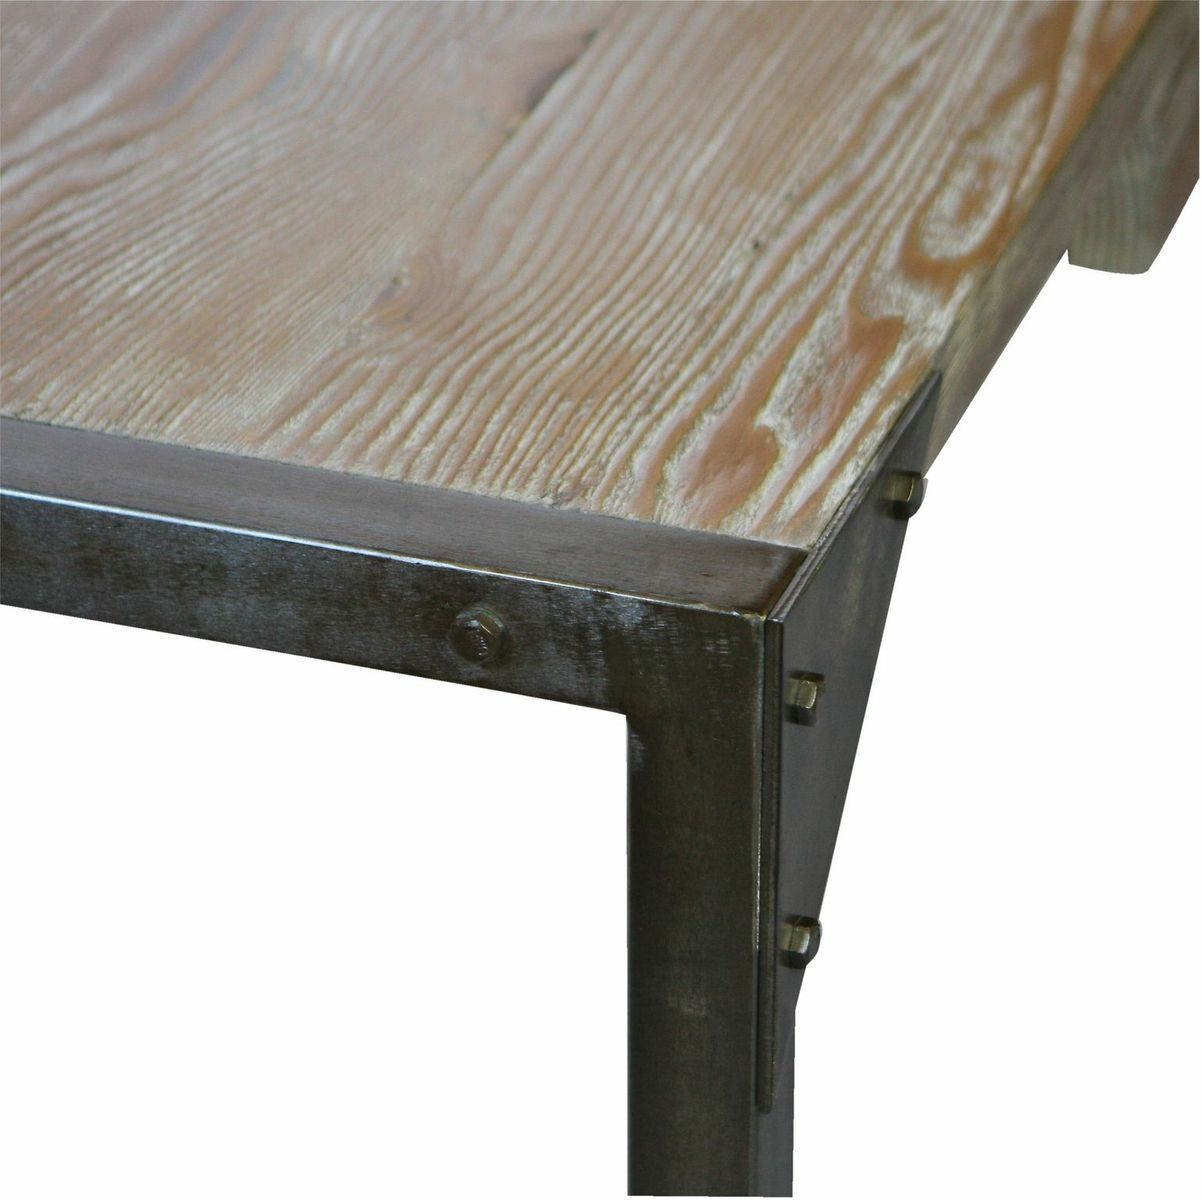 Reclaimed Wood Dining Table Made From Old Homes Modern